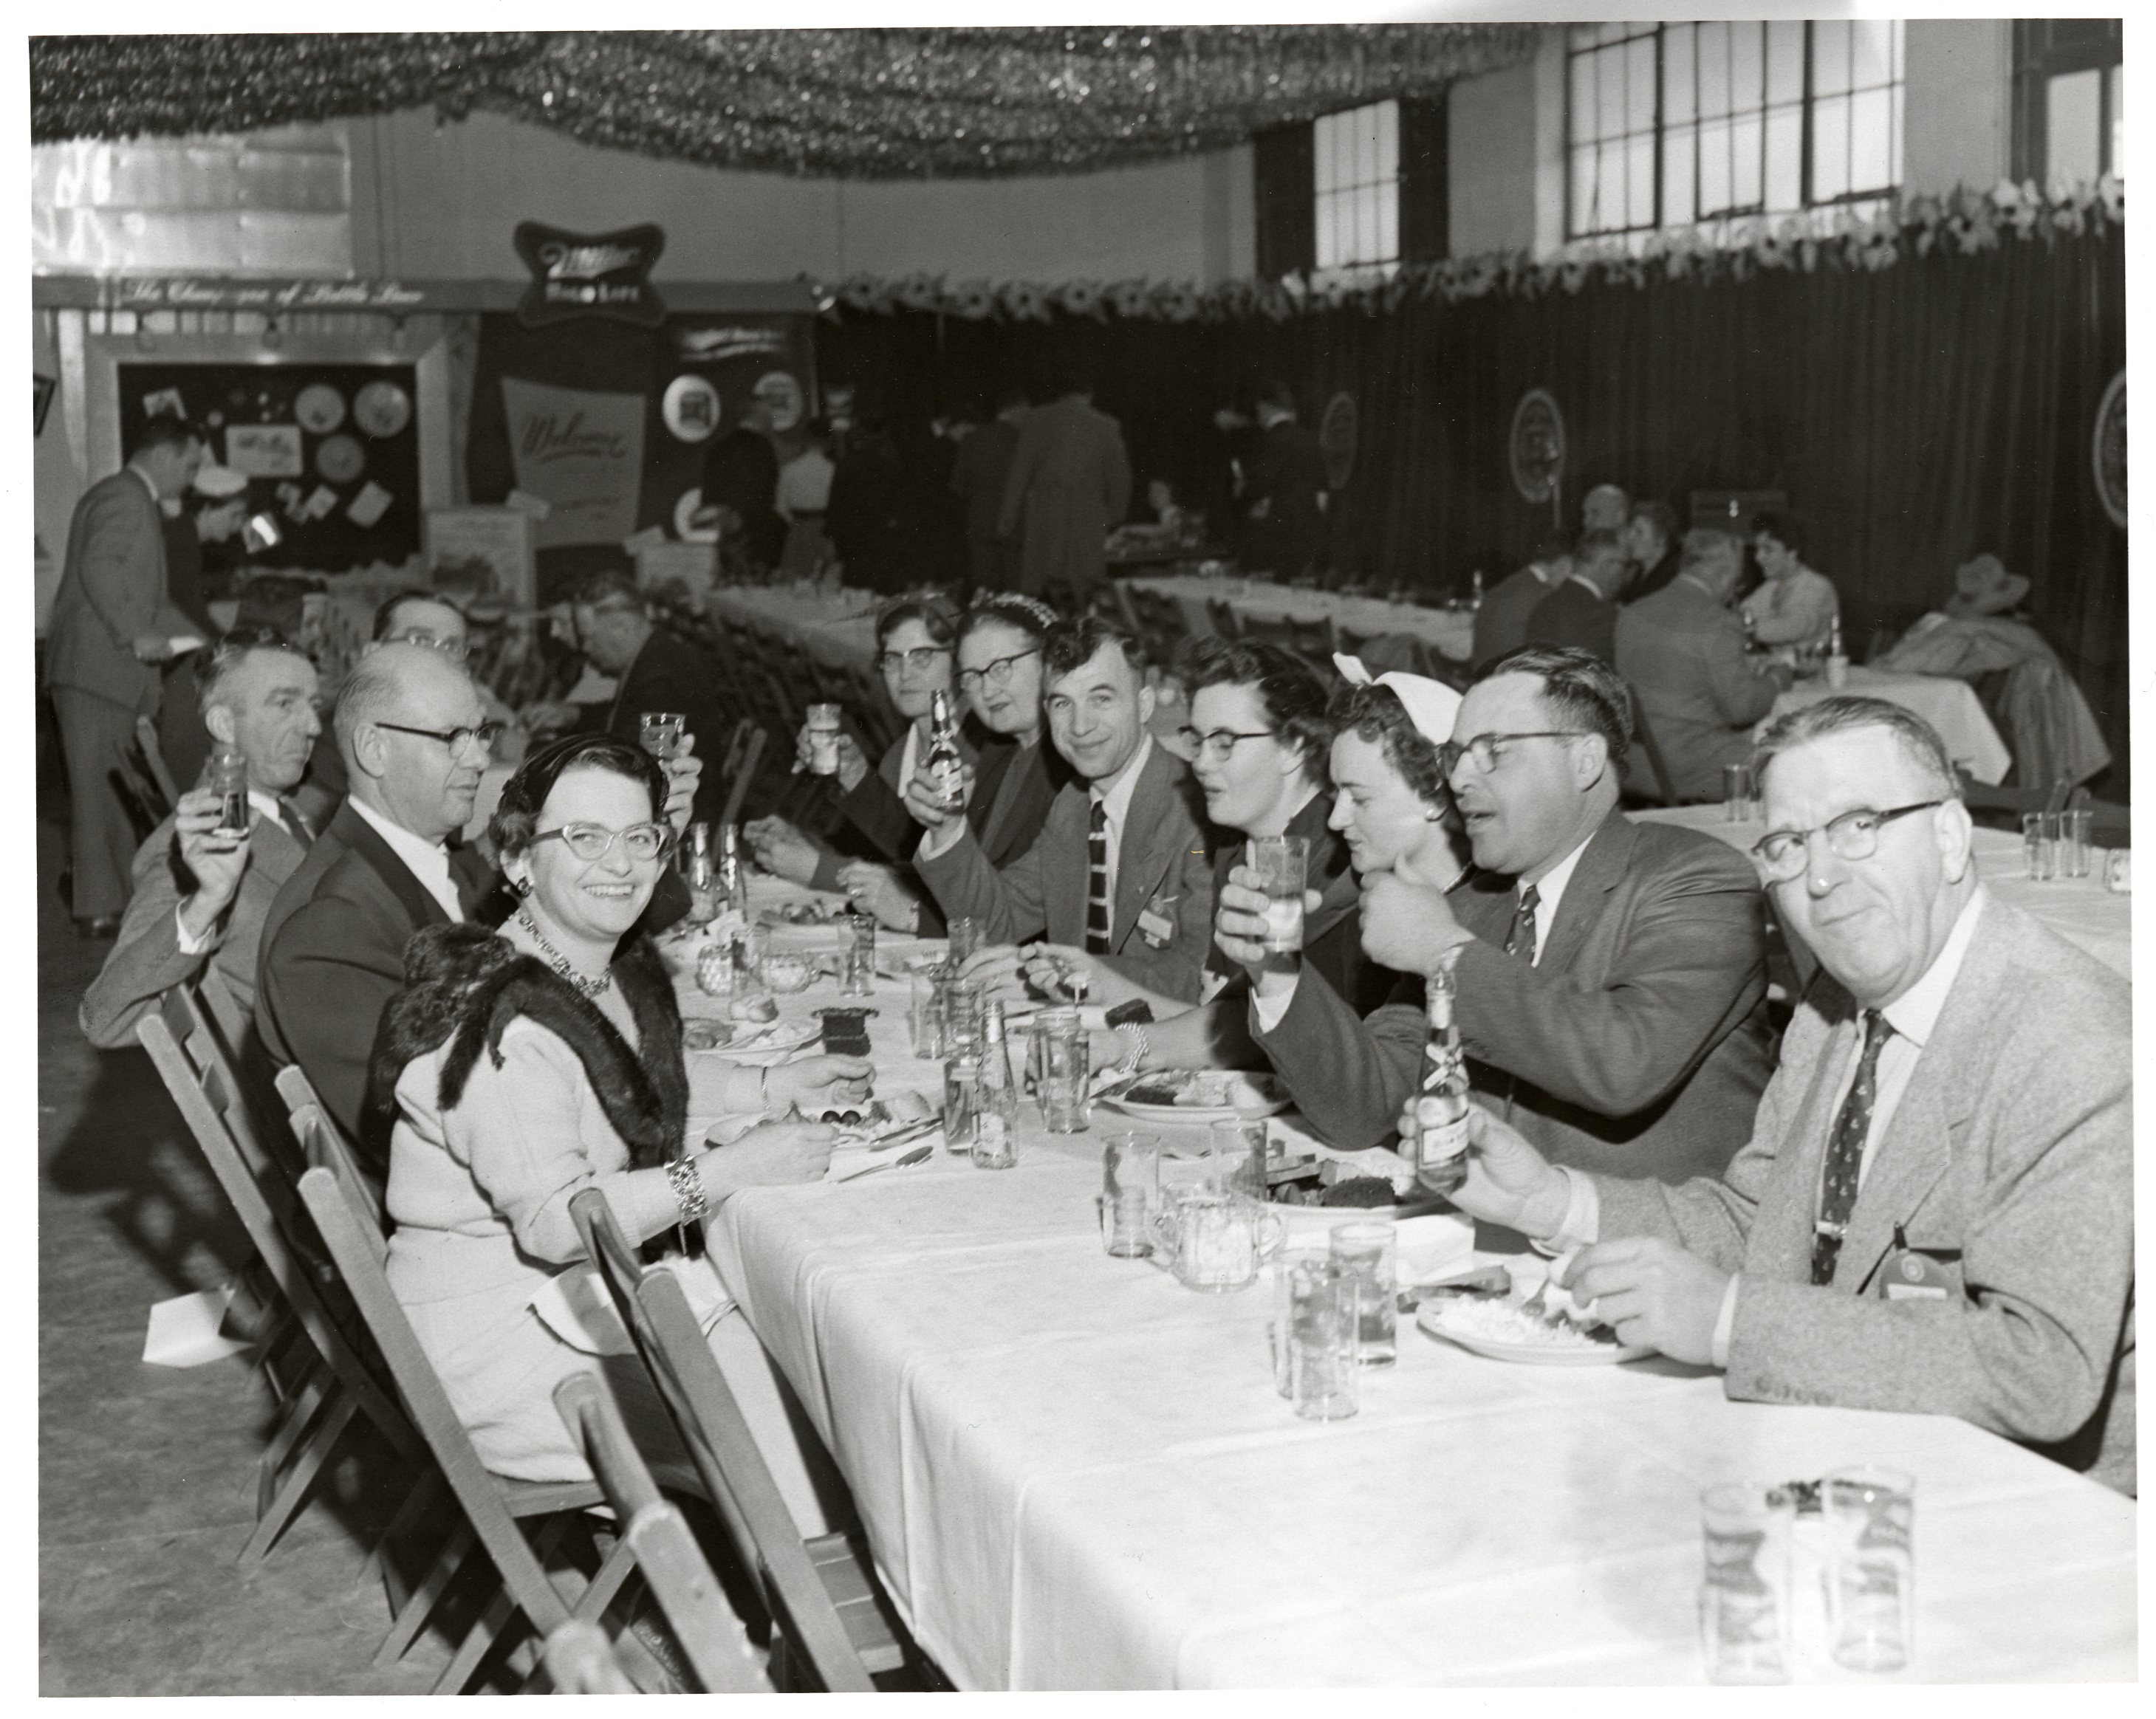 Miller 100th anniversary distributor party 1955